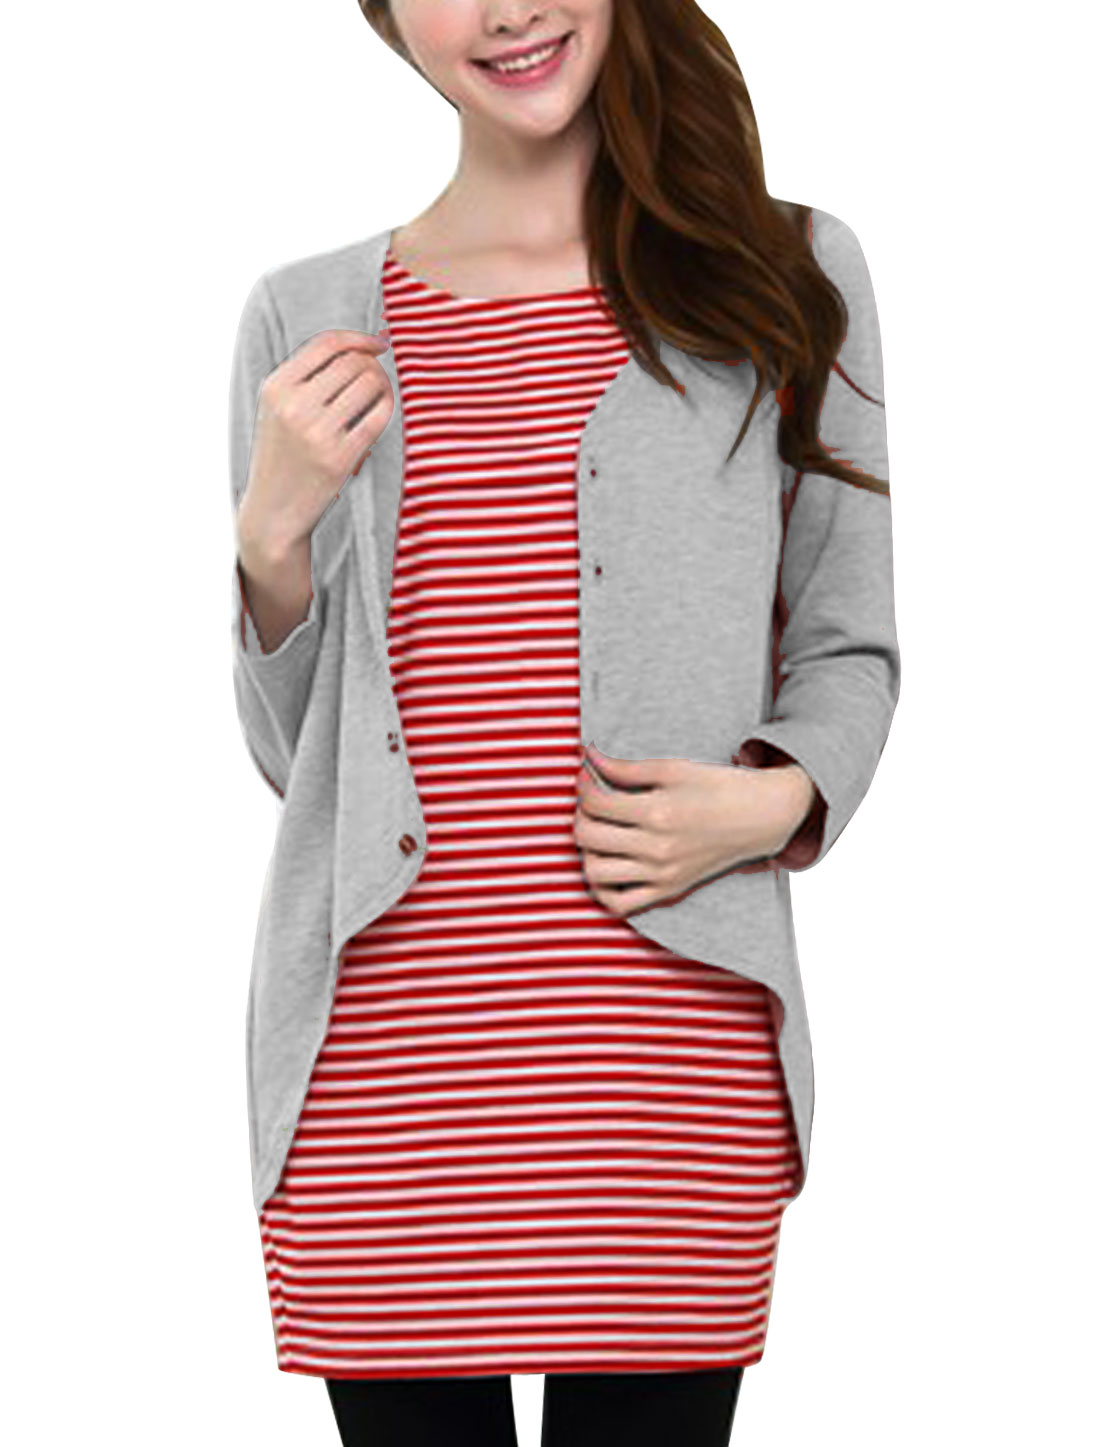 XK20 Maternity Stripes Pattern Fake Two Pieces Casual Tunic Top Light Gray Red L/M (US 8)